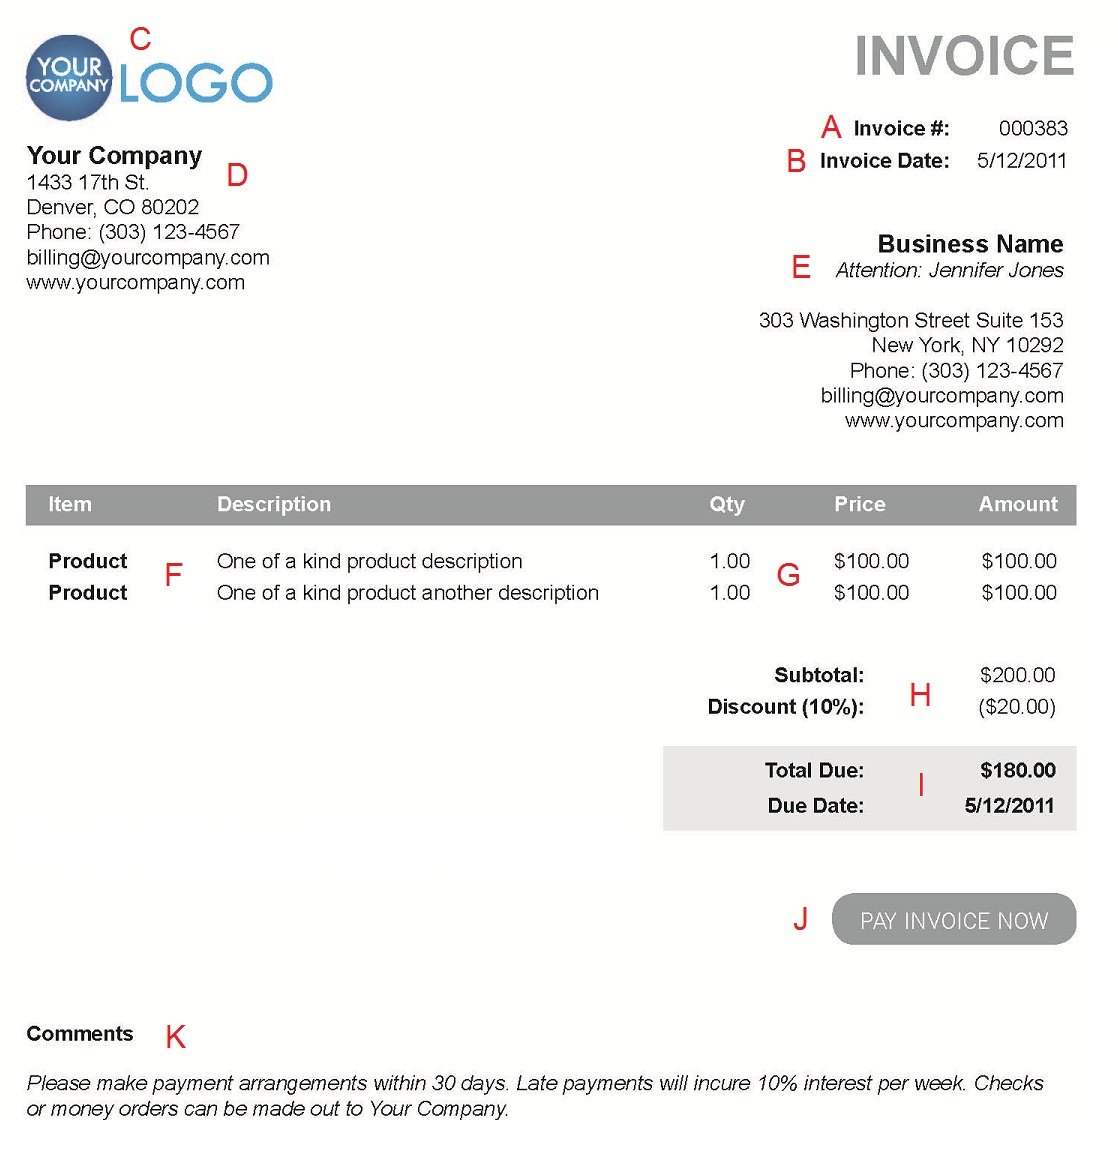 Coachoutletonlineplusus  Scenic The  Different Sections Of An Electronic Payment Invoice With Magnificent A  With Lovely Free Invoice Templates For Excel Also Wordpress Invoices In Addition Automatic Invoice And Tax Invoices Requirements As Well As Software For Invoice Additionally Example Tax Invoice From Paysimplecom With Coachoutletonlineplusus  Magnificent The  Different Sections Of An Electronic Payment Invoice With Lovely A  And Scenic Free Invoice Templates For Excel Also Wordpress Invoices In Addition Automatic Invoice From Paysimplecom